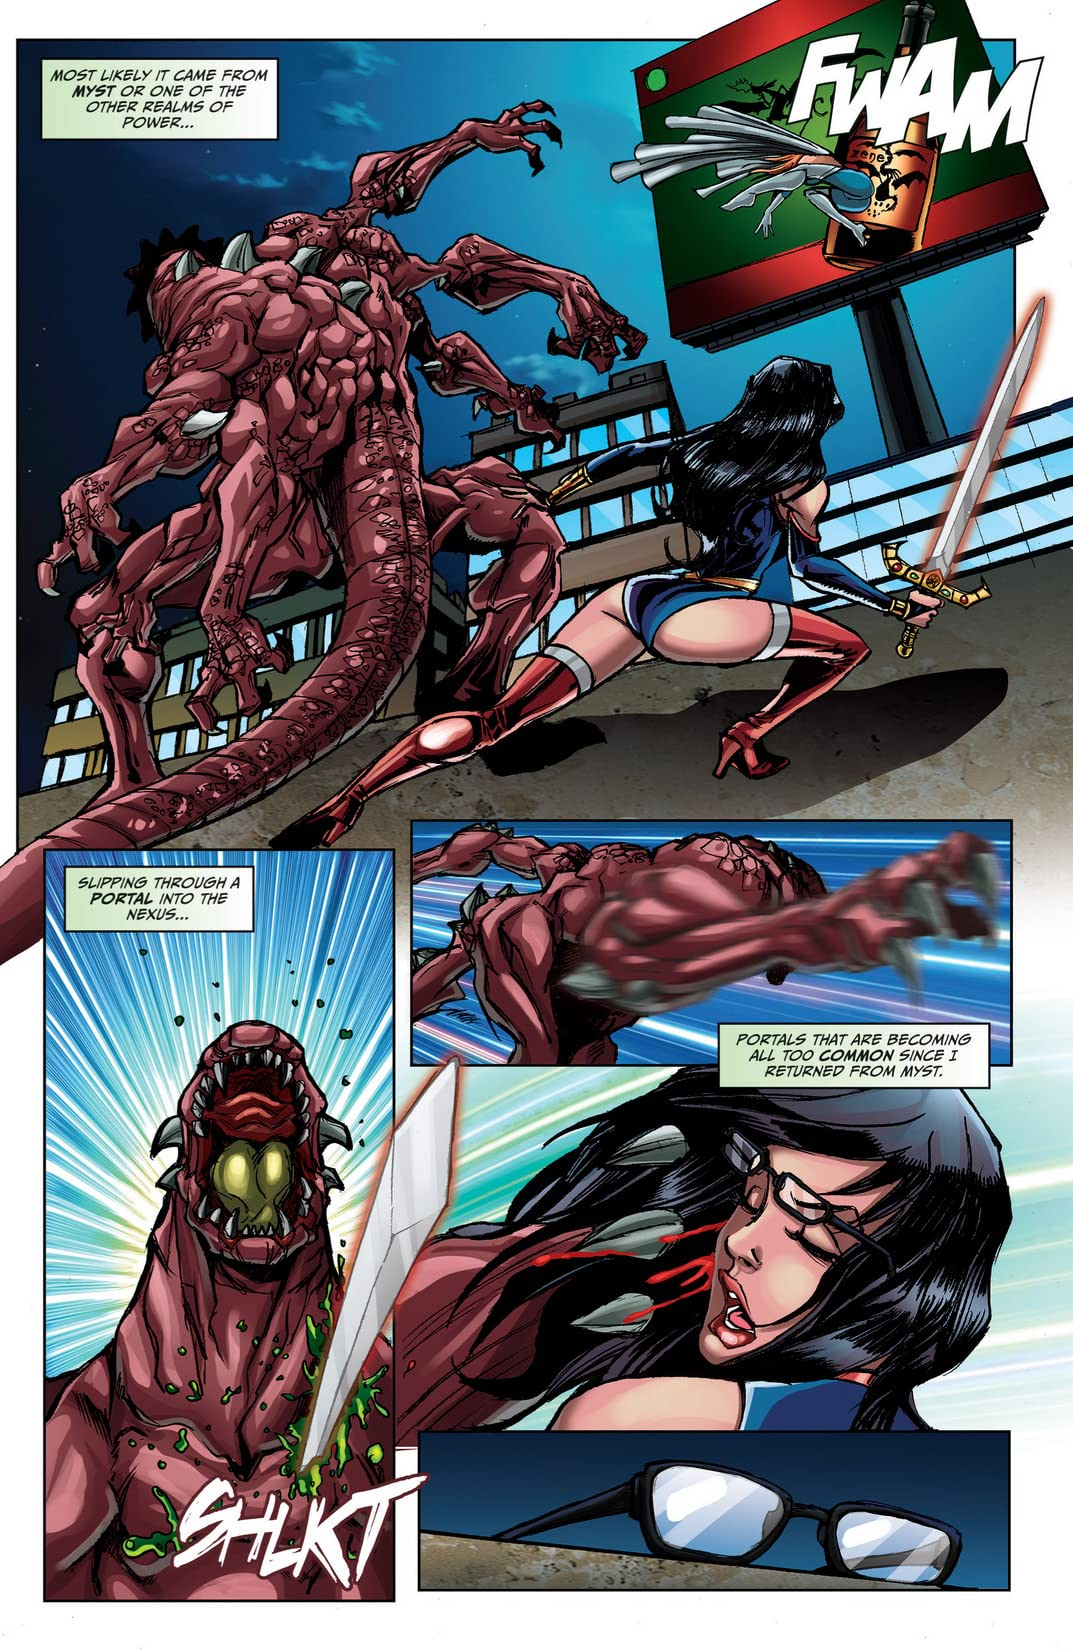 Grimm Fairy Tales: Valentine's Day Special 2013